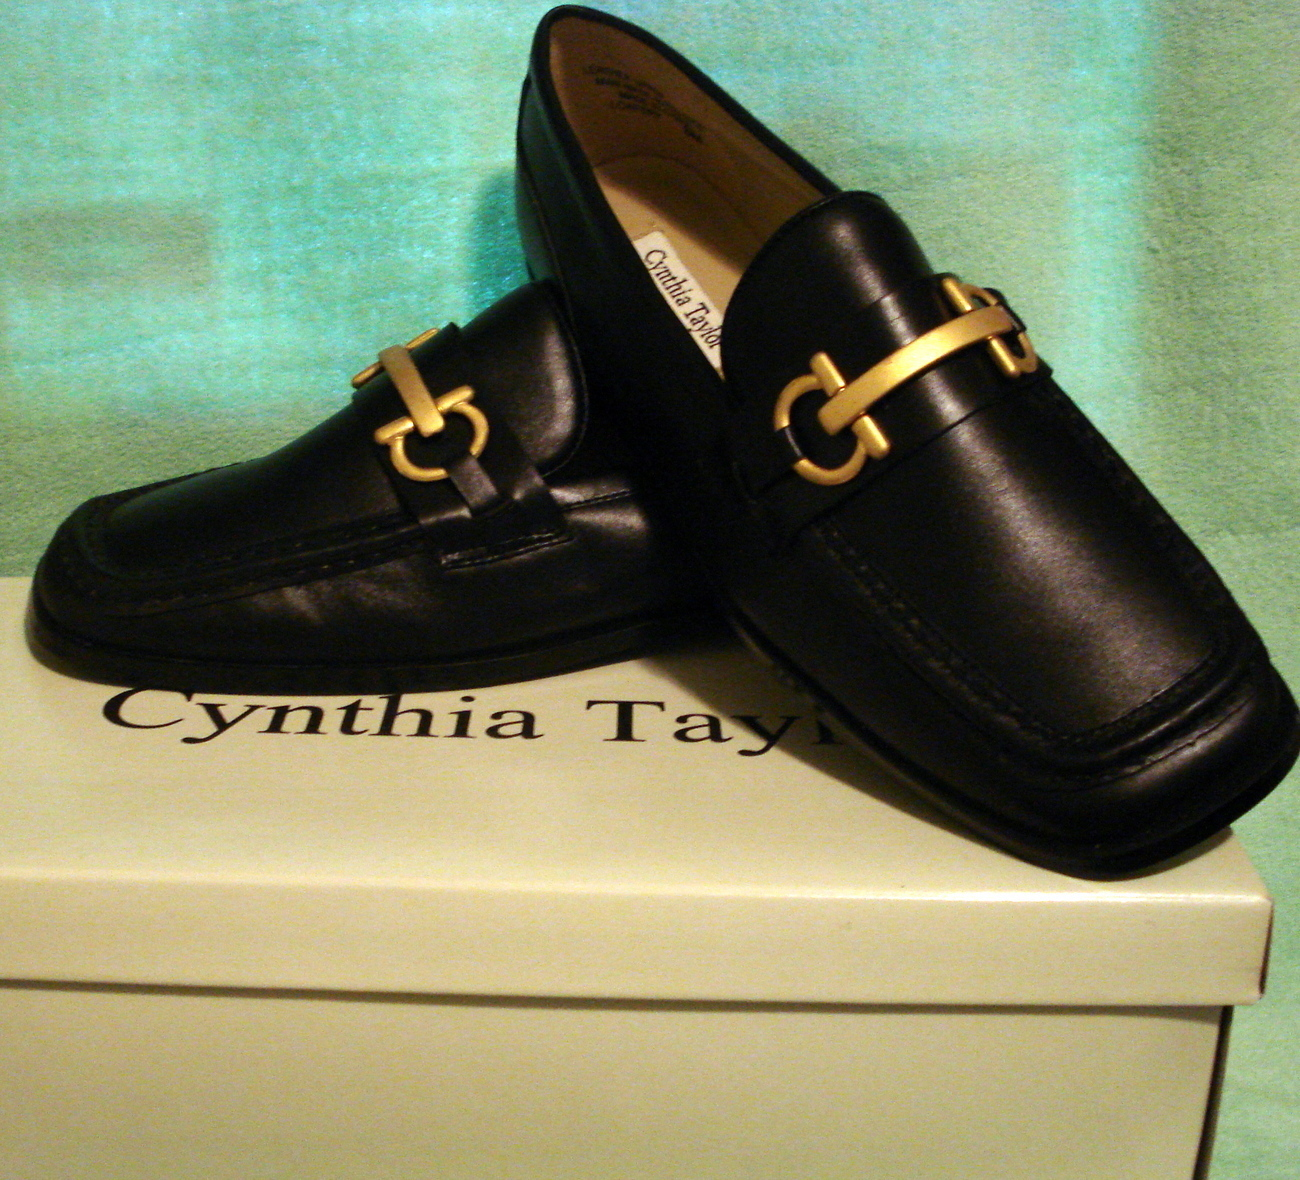 Cynthiataylorloafer